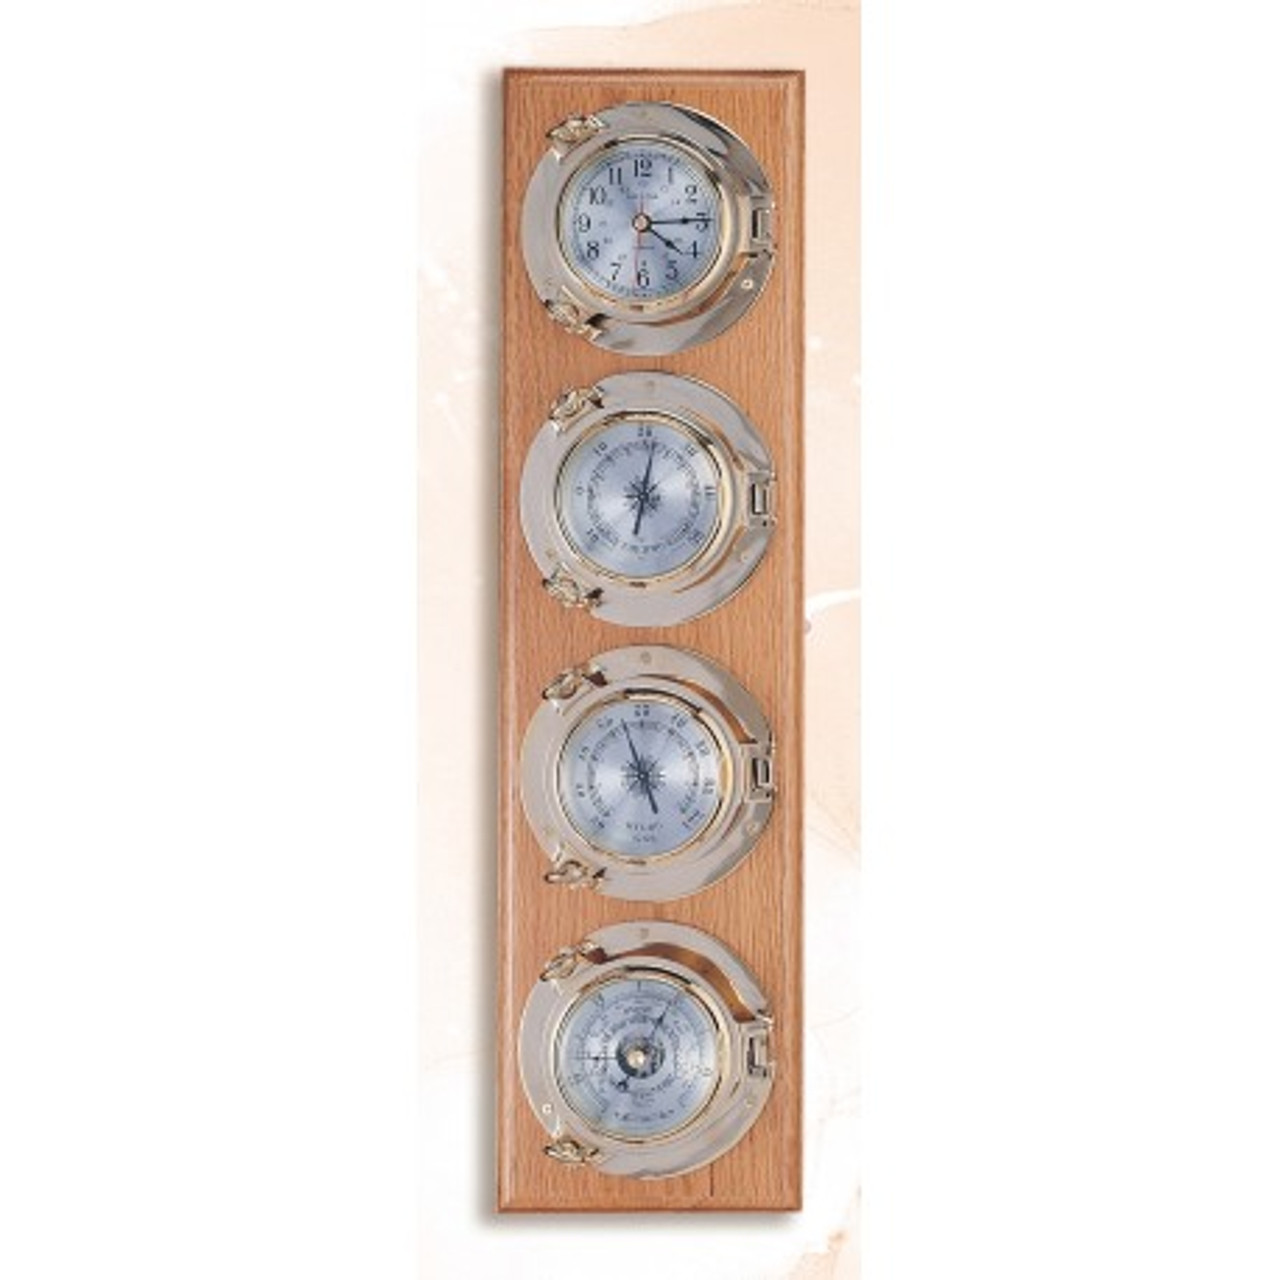 "(262-4)  25"" Deluxe Porthole Clock, Barometer, Thermometer, and Hygrometer on Wooden Base"